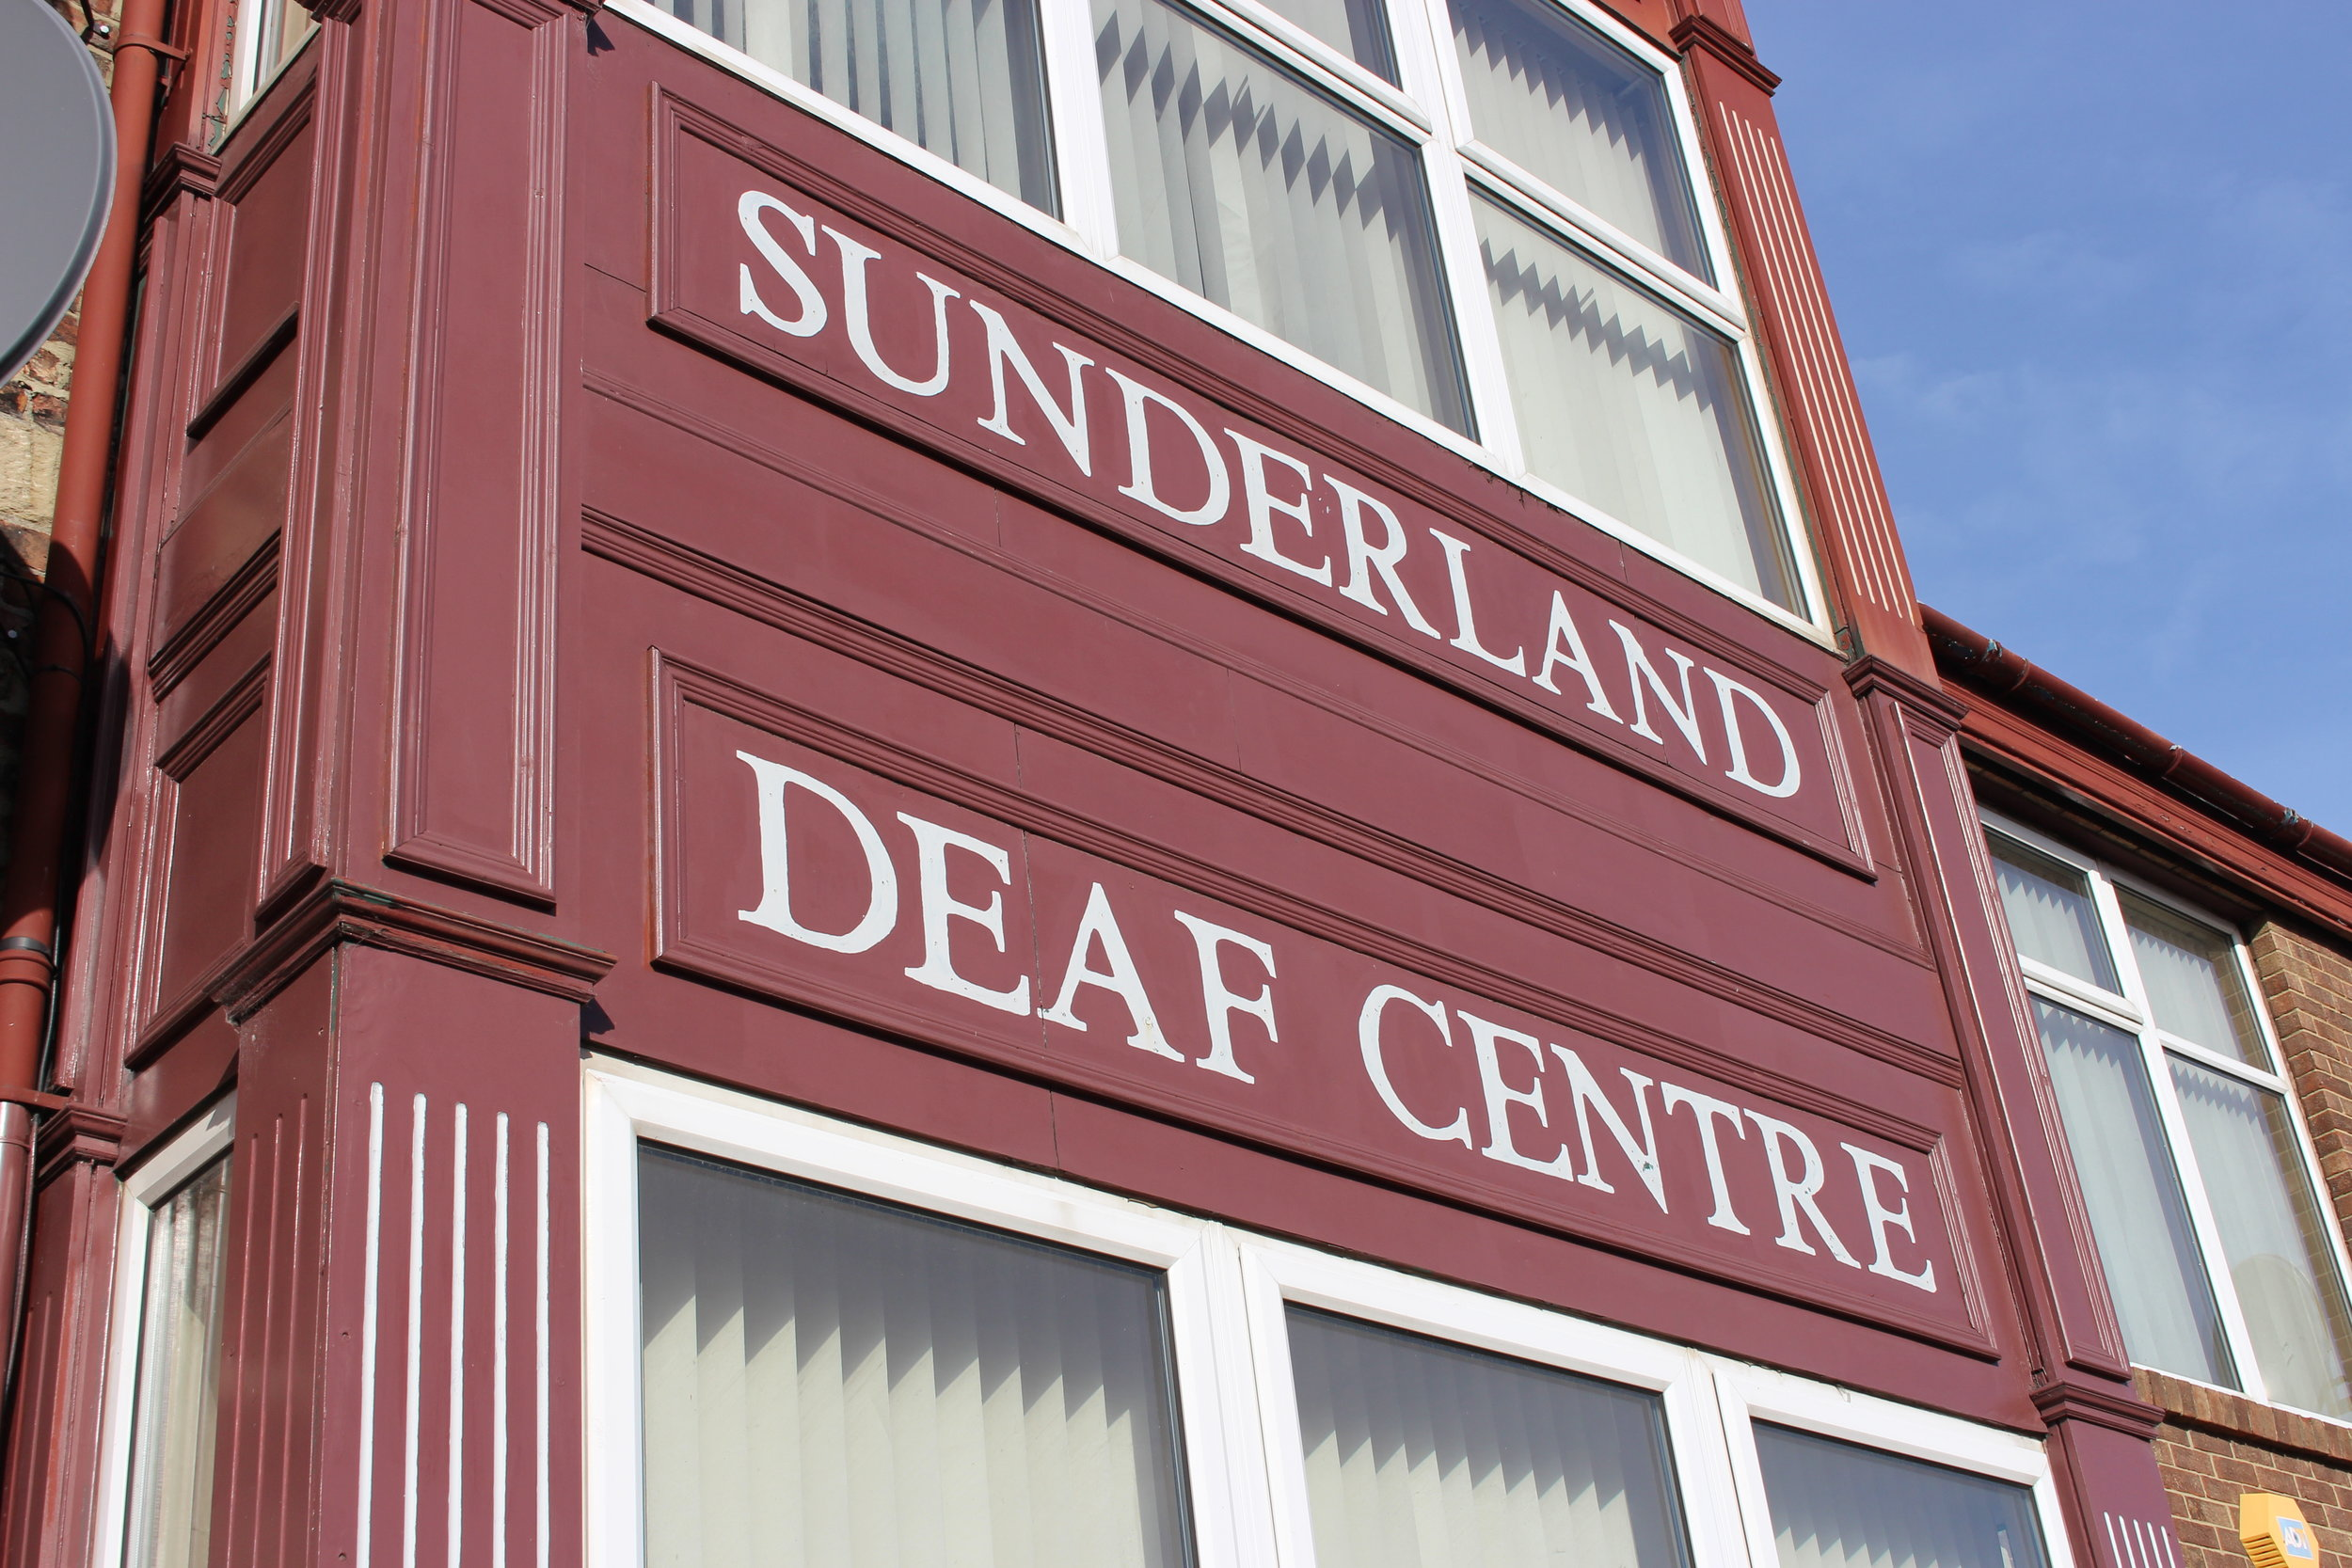 Our Newest Home! - Opened on the 1st of October 2018, our Sunderland office has it's finger on the pulse. Working out of Sunderland Deaf Centre, this new branch is the hub for Total Communication Nationwide and where all national operations will be run from.